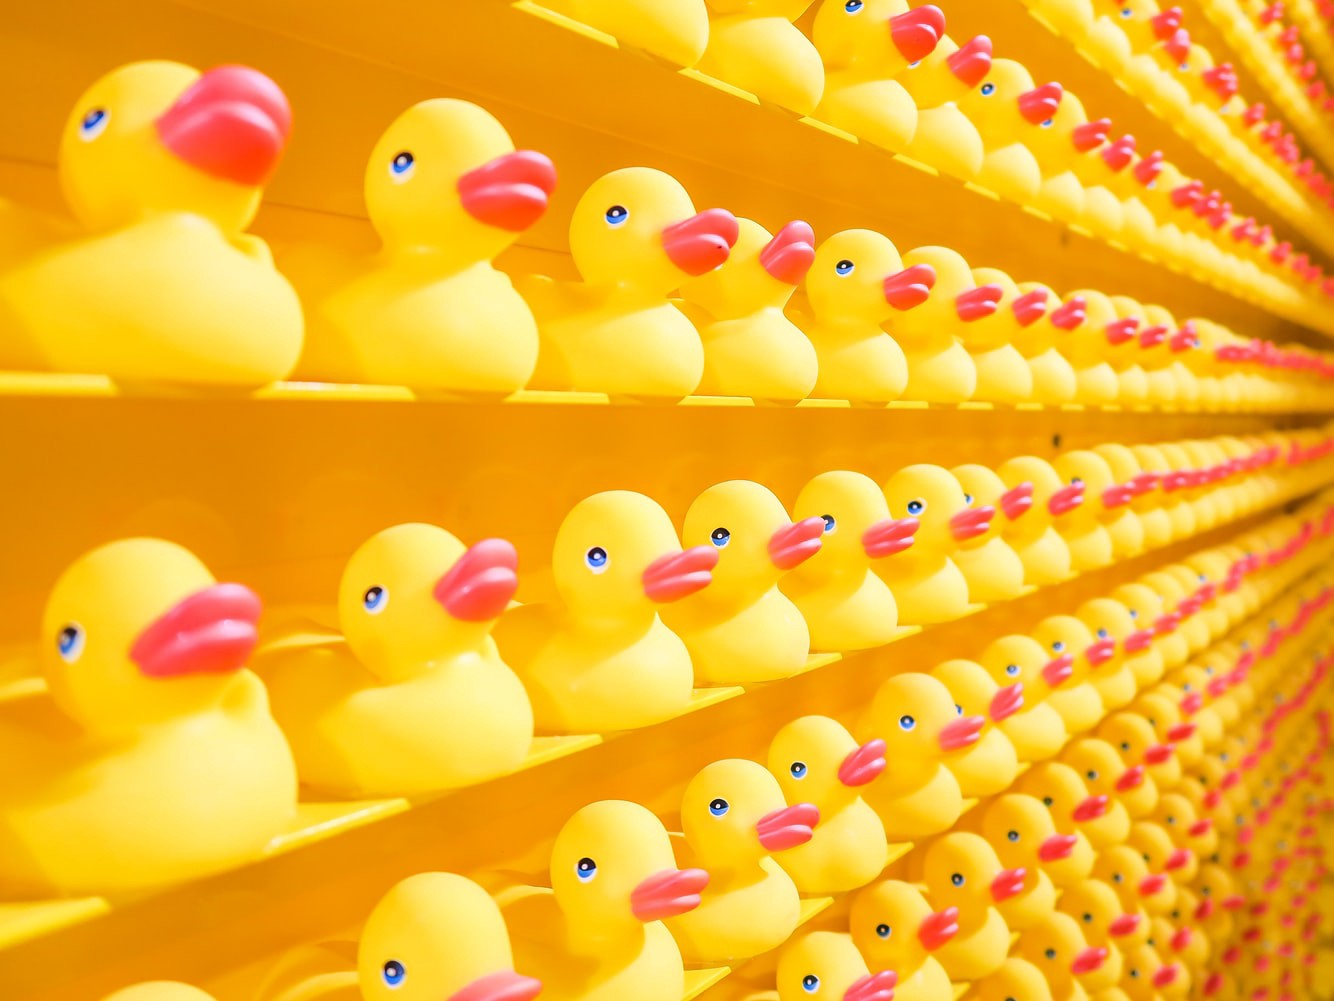 Yellow rubber ducks in rows on shelves.